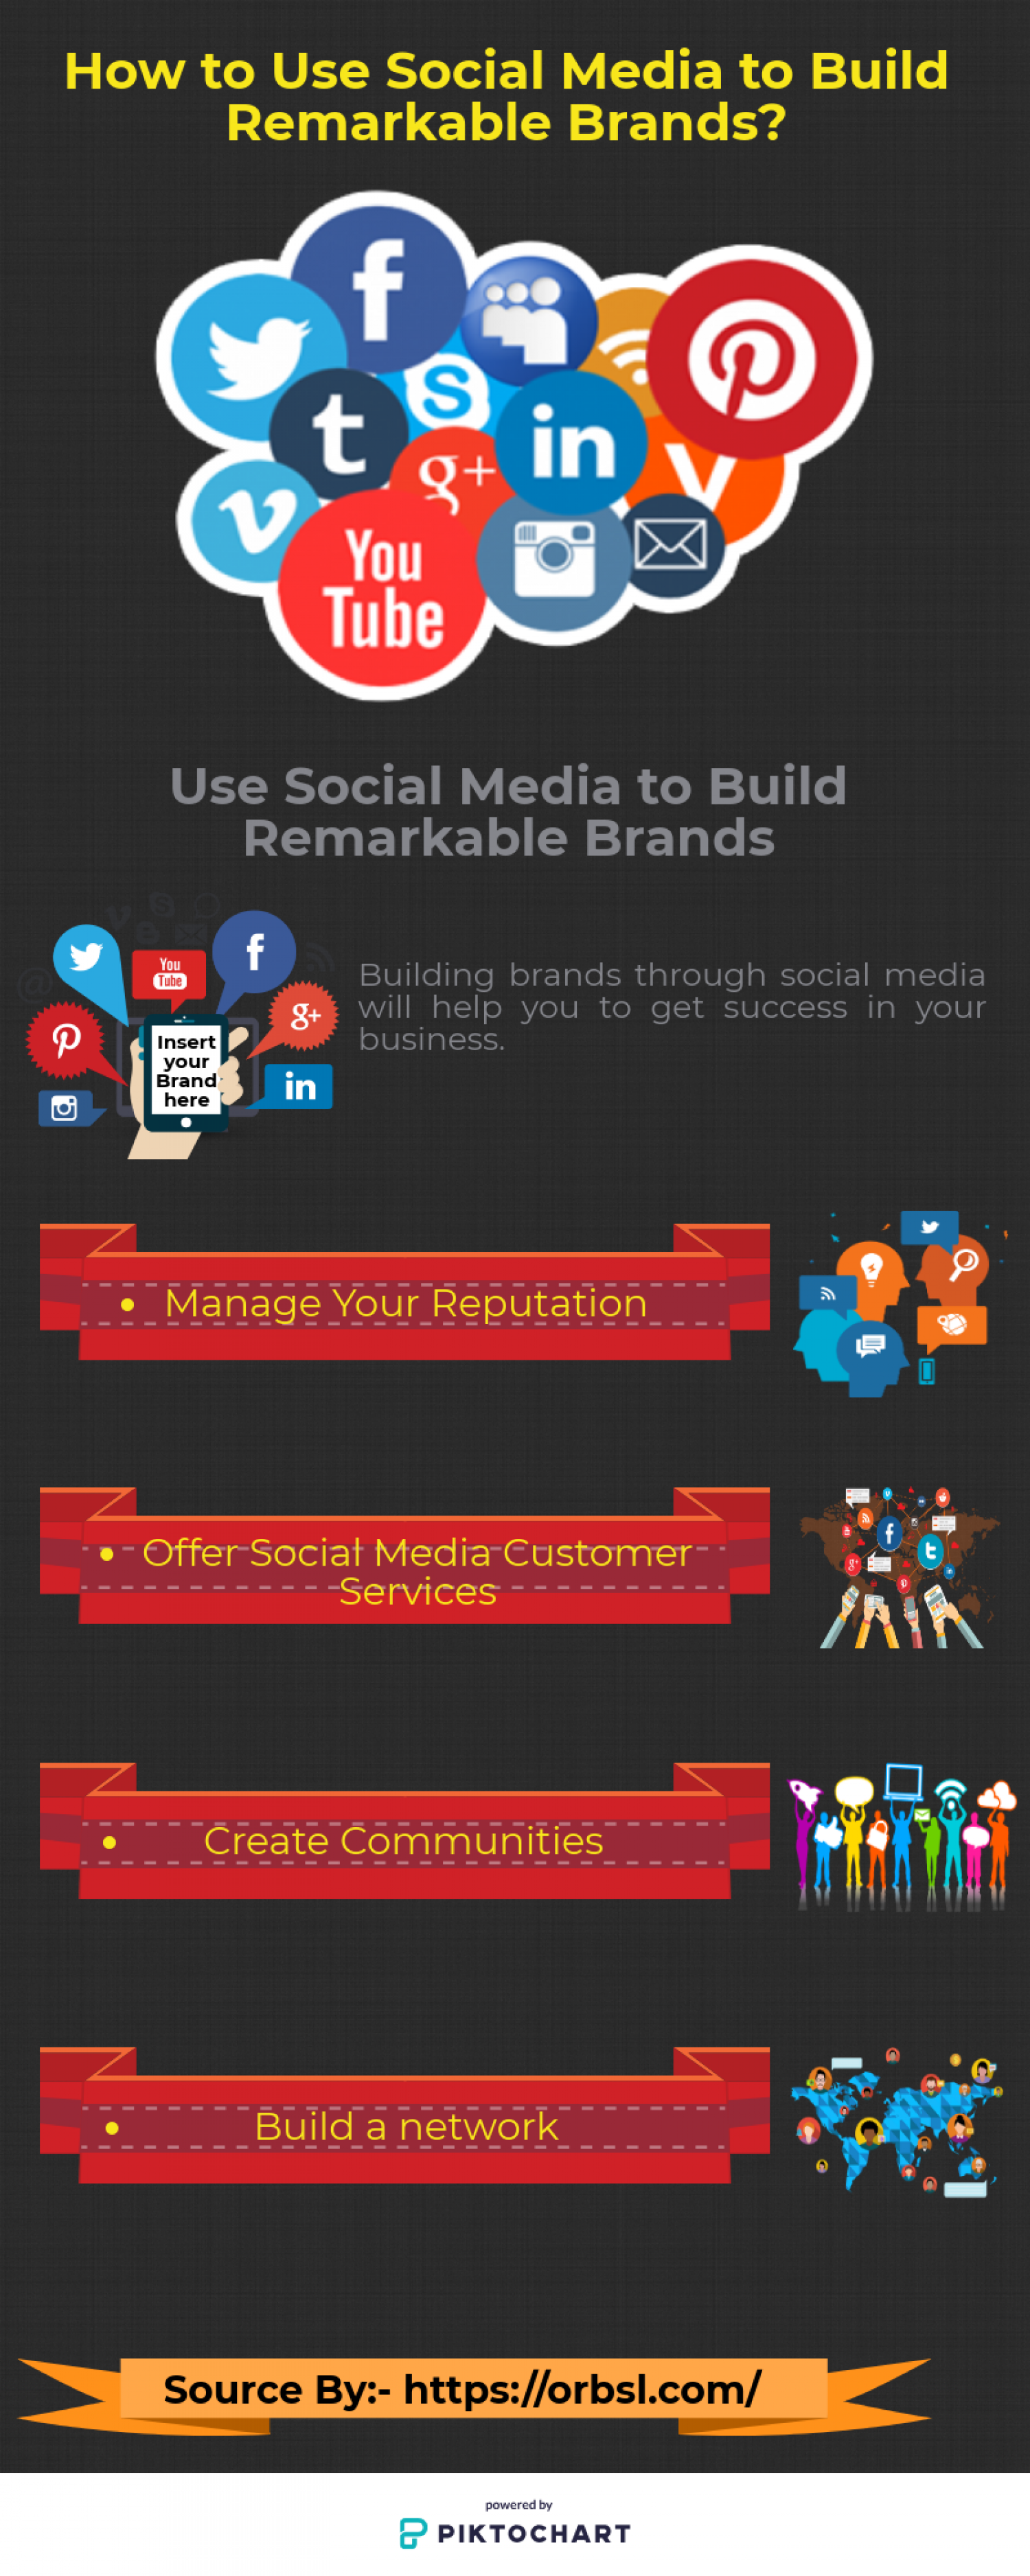 How to Use Social Media to Build Remarkable Brands? Infographic